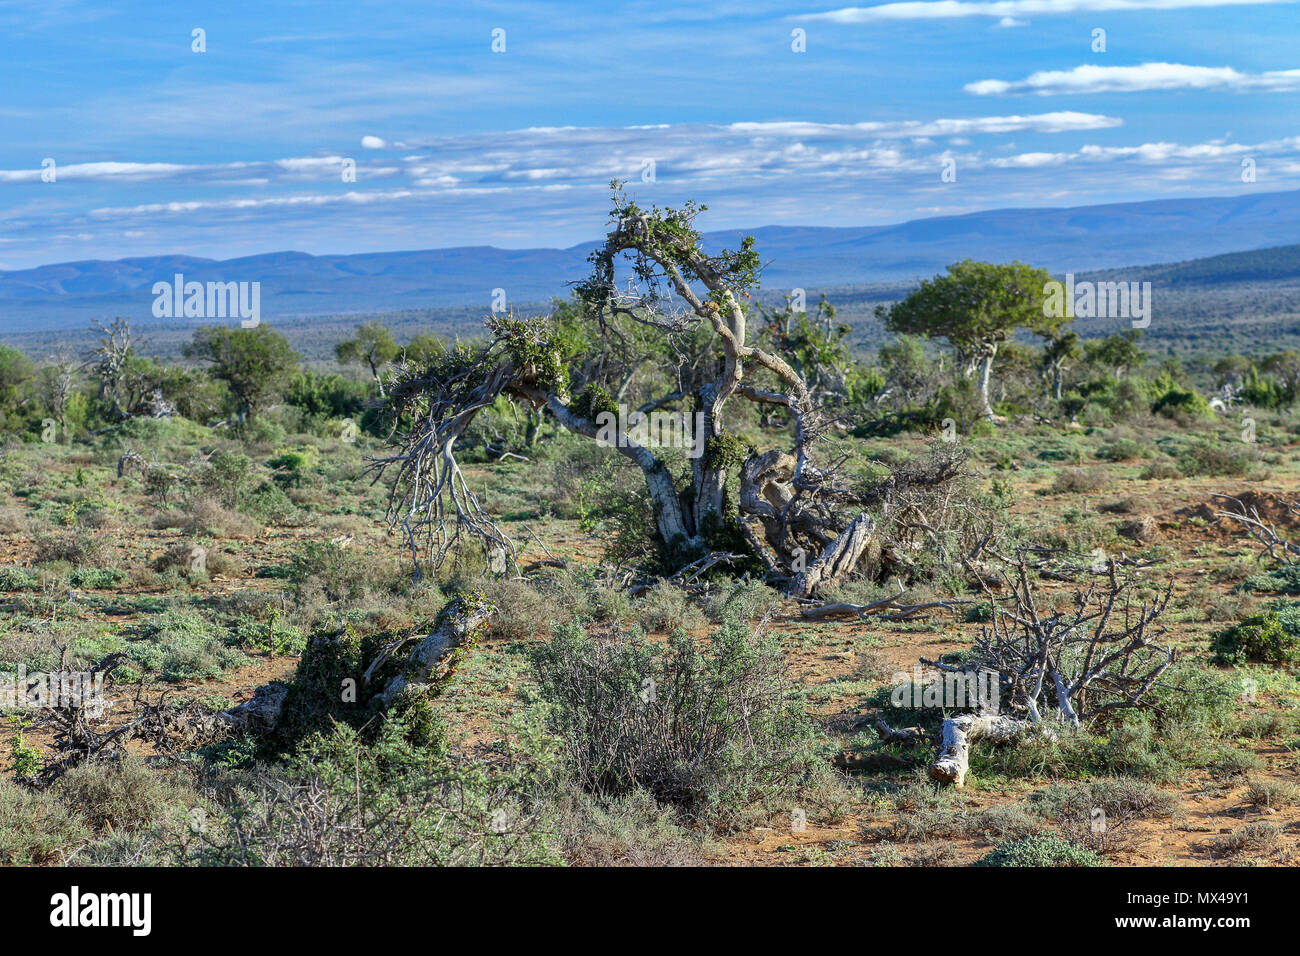 Arid fynbos landscape and lone tree in the landscape of the Addo Elephant National Park, eastern cape, south Africa Stock Photo